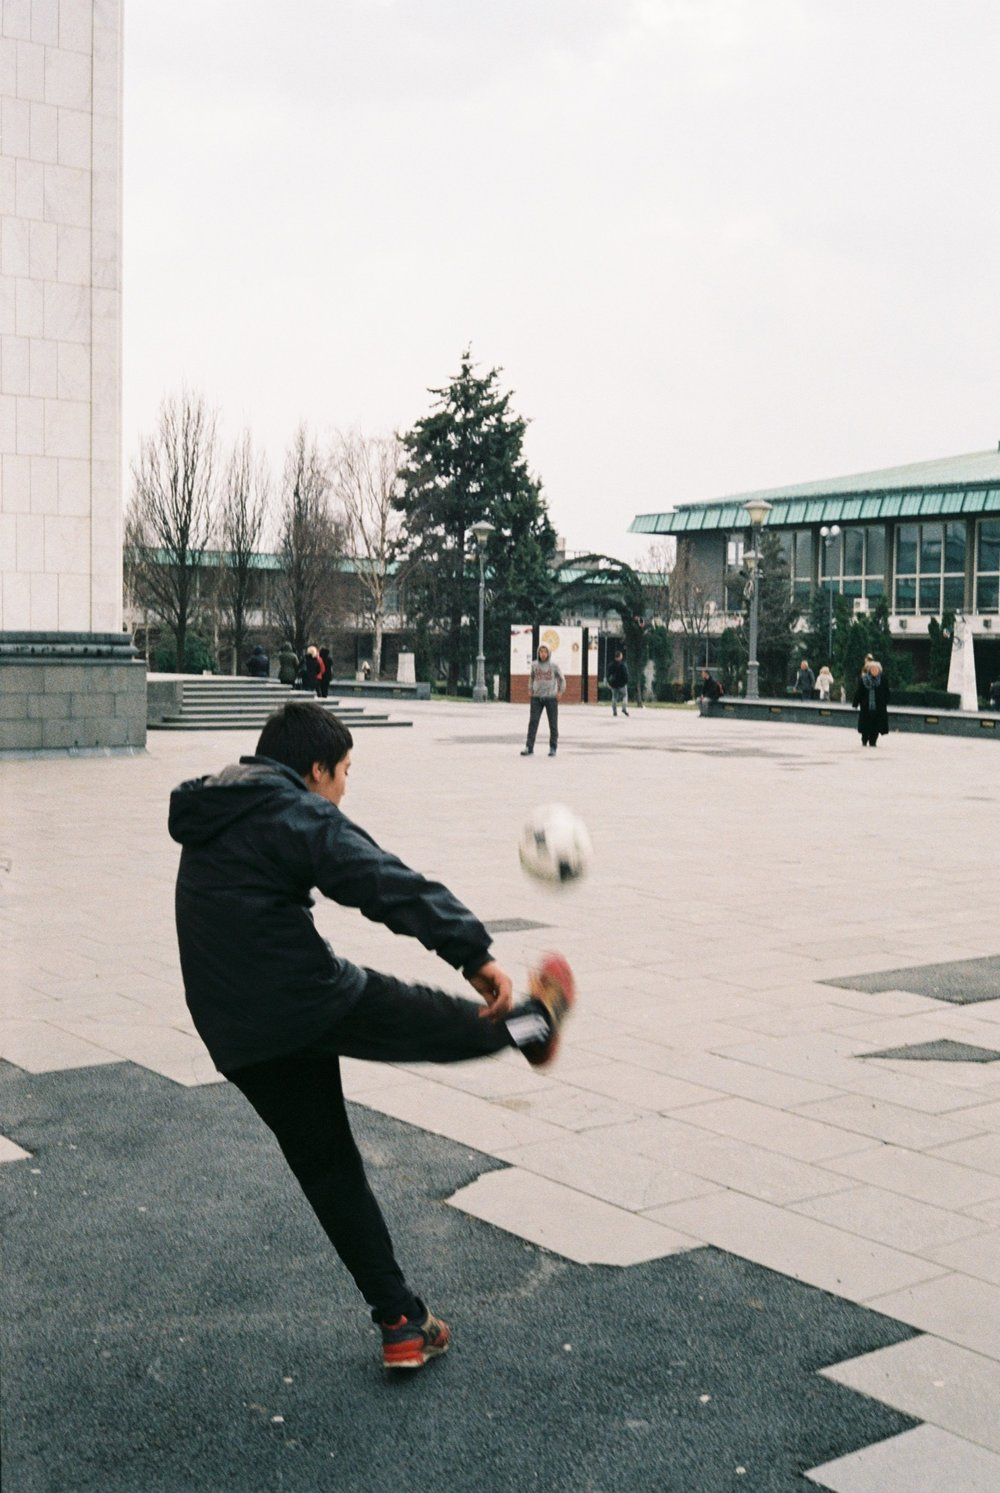 Two gypsy kids playing soccer outside the Temple of St. Sava